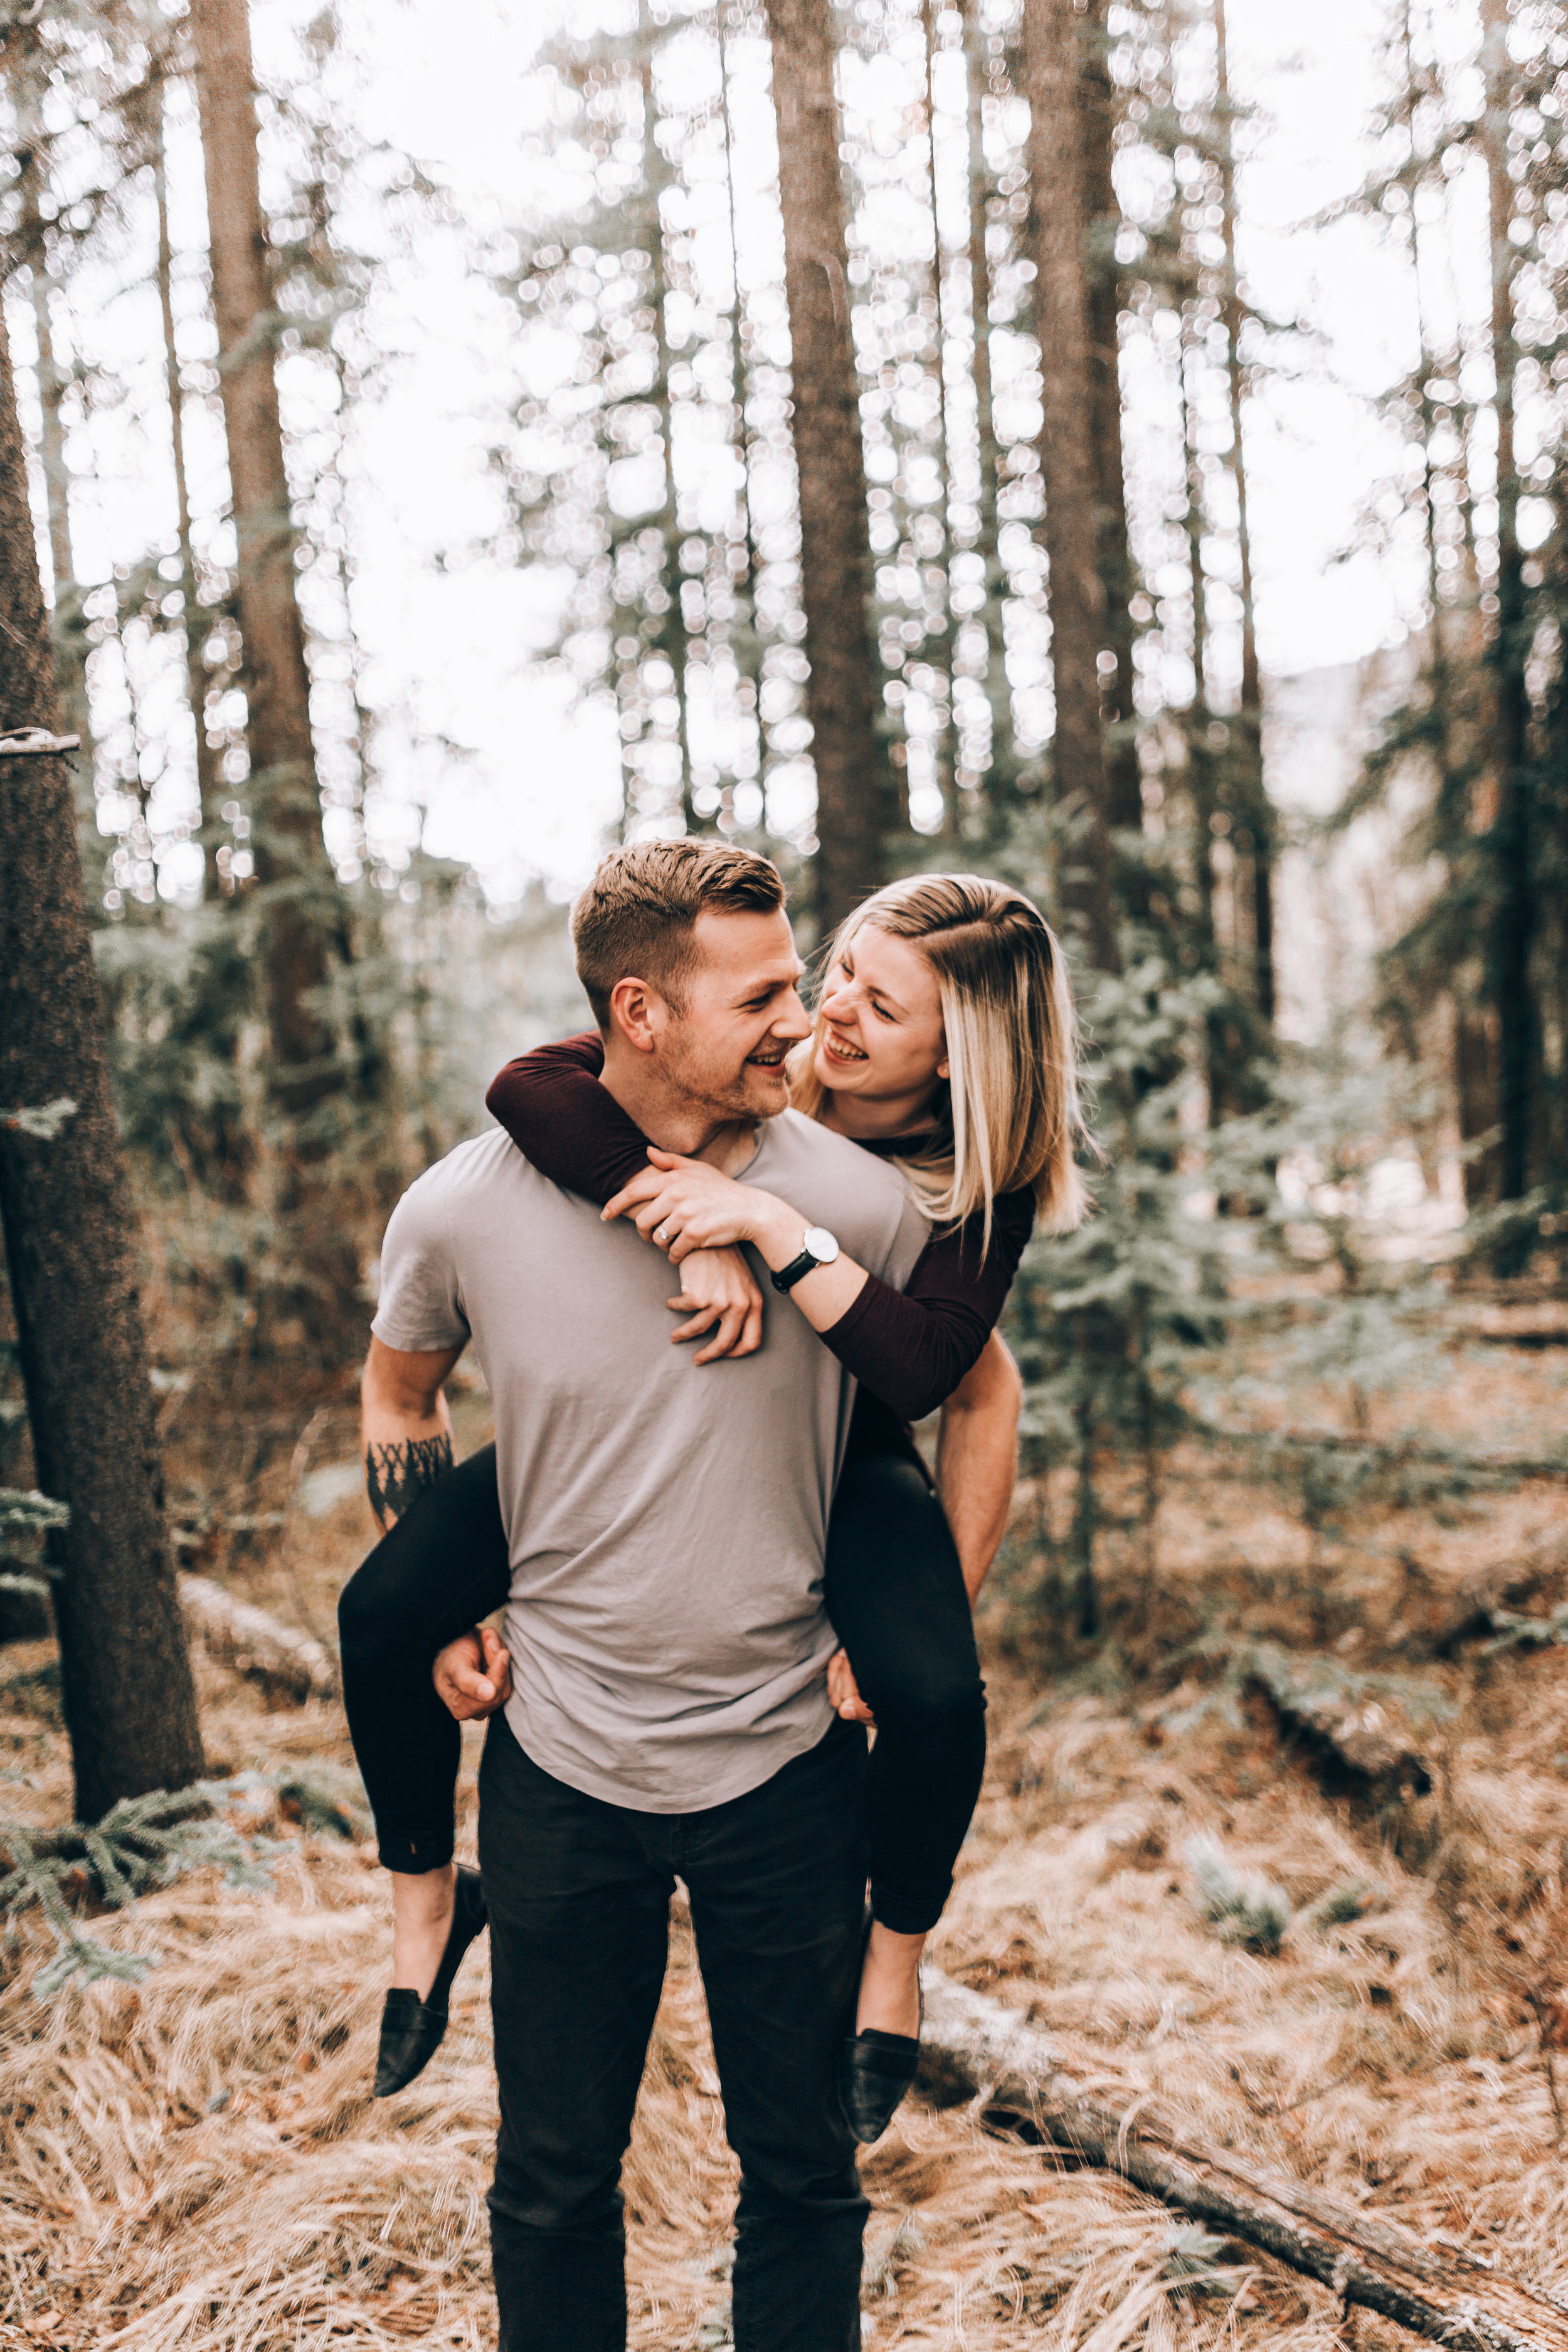 simpleperfectionsphotography.cullen+chelsey-38.jpg